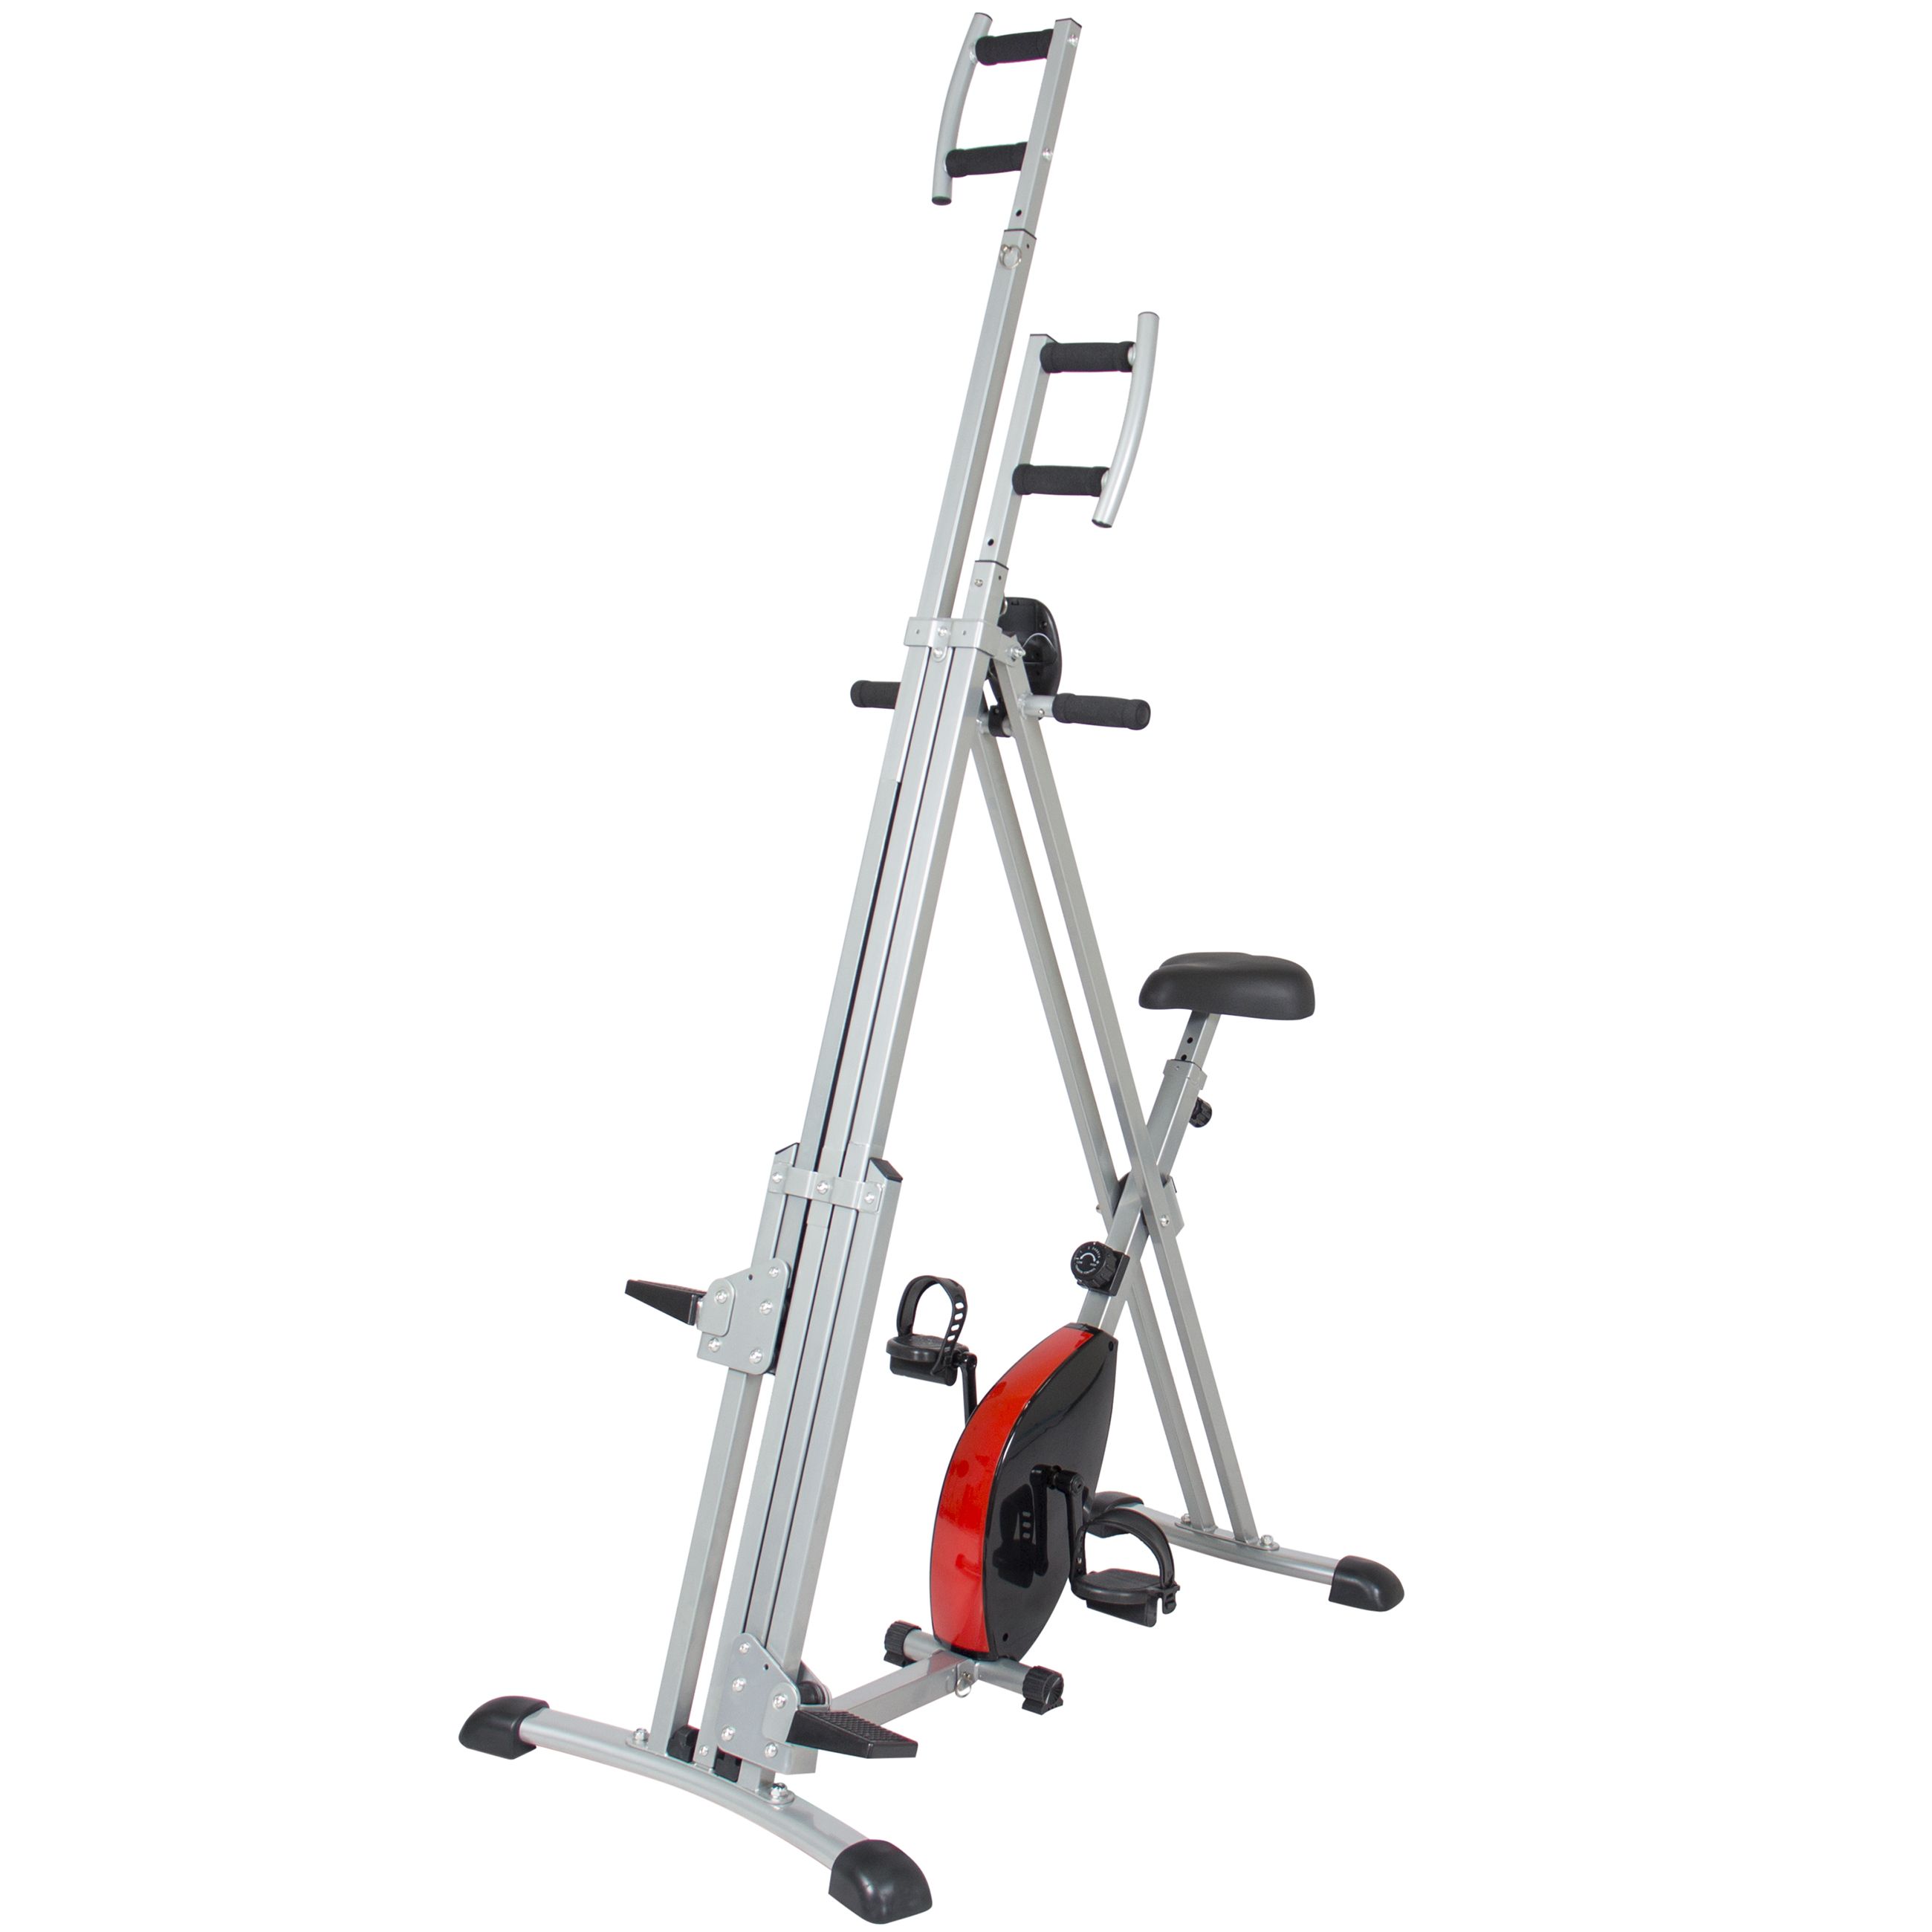 Best Choice Products Total Body 2-IN-1 Vertical Climber Magnetic Exercise Bike Fitness Machine by